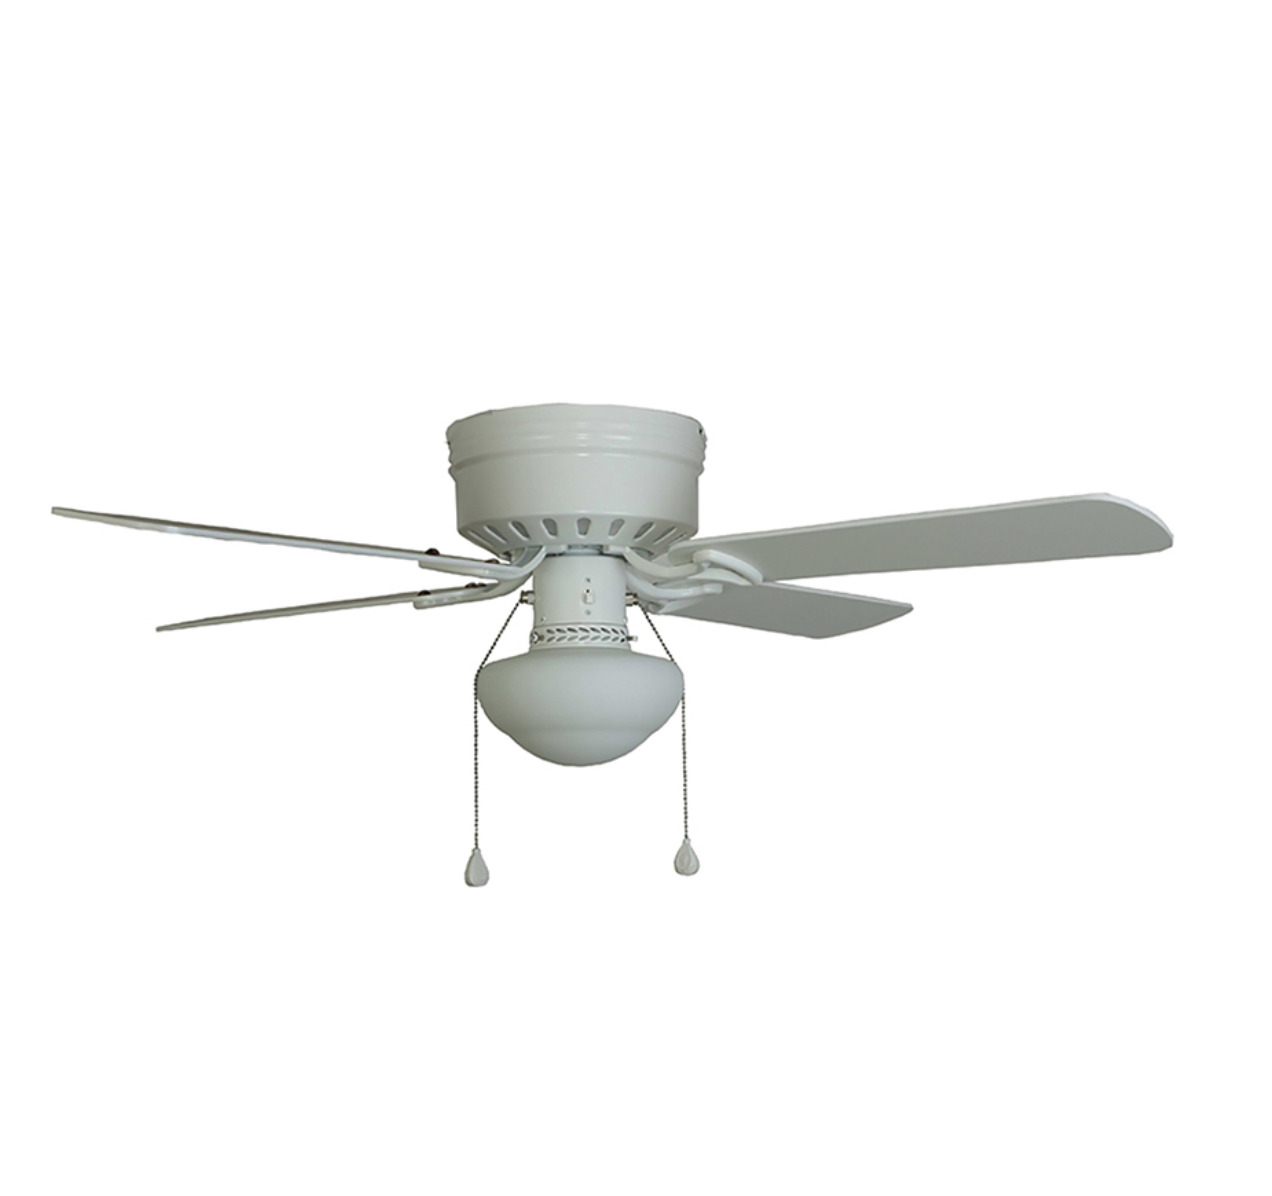 Led Flushmount Ceiling Fan All White Garage Indoor 42 Inch Small Master Bedroom 1 Of 12only Available